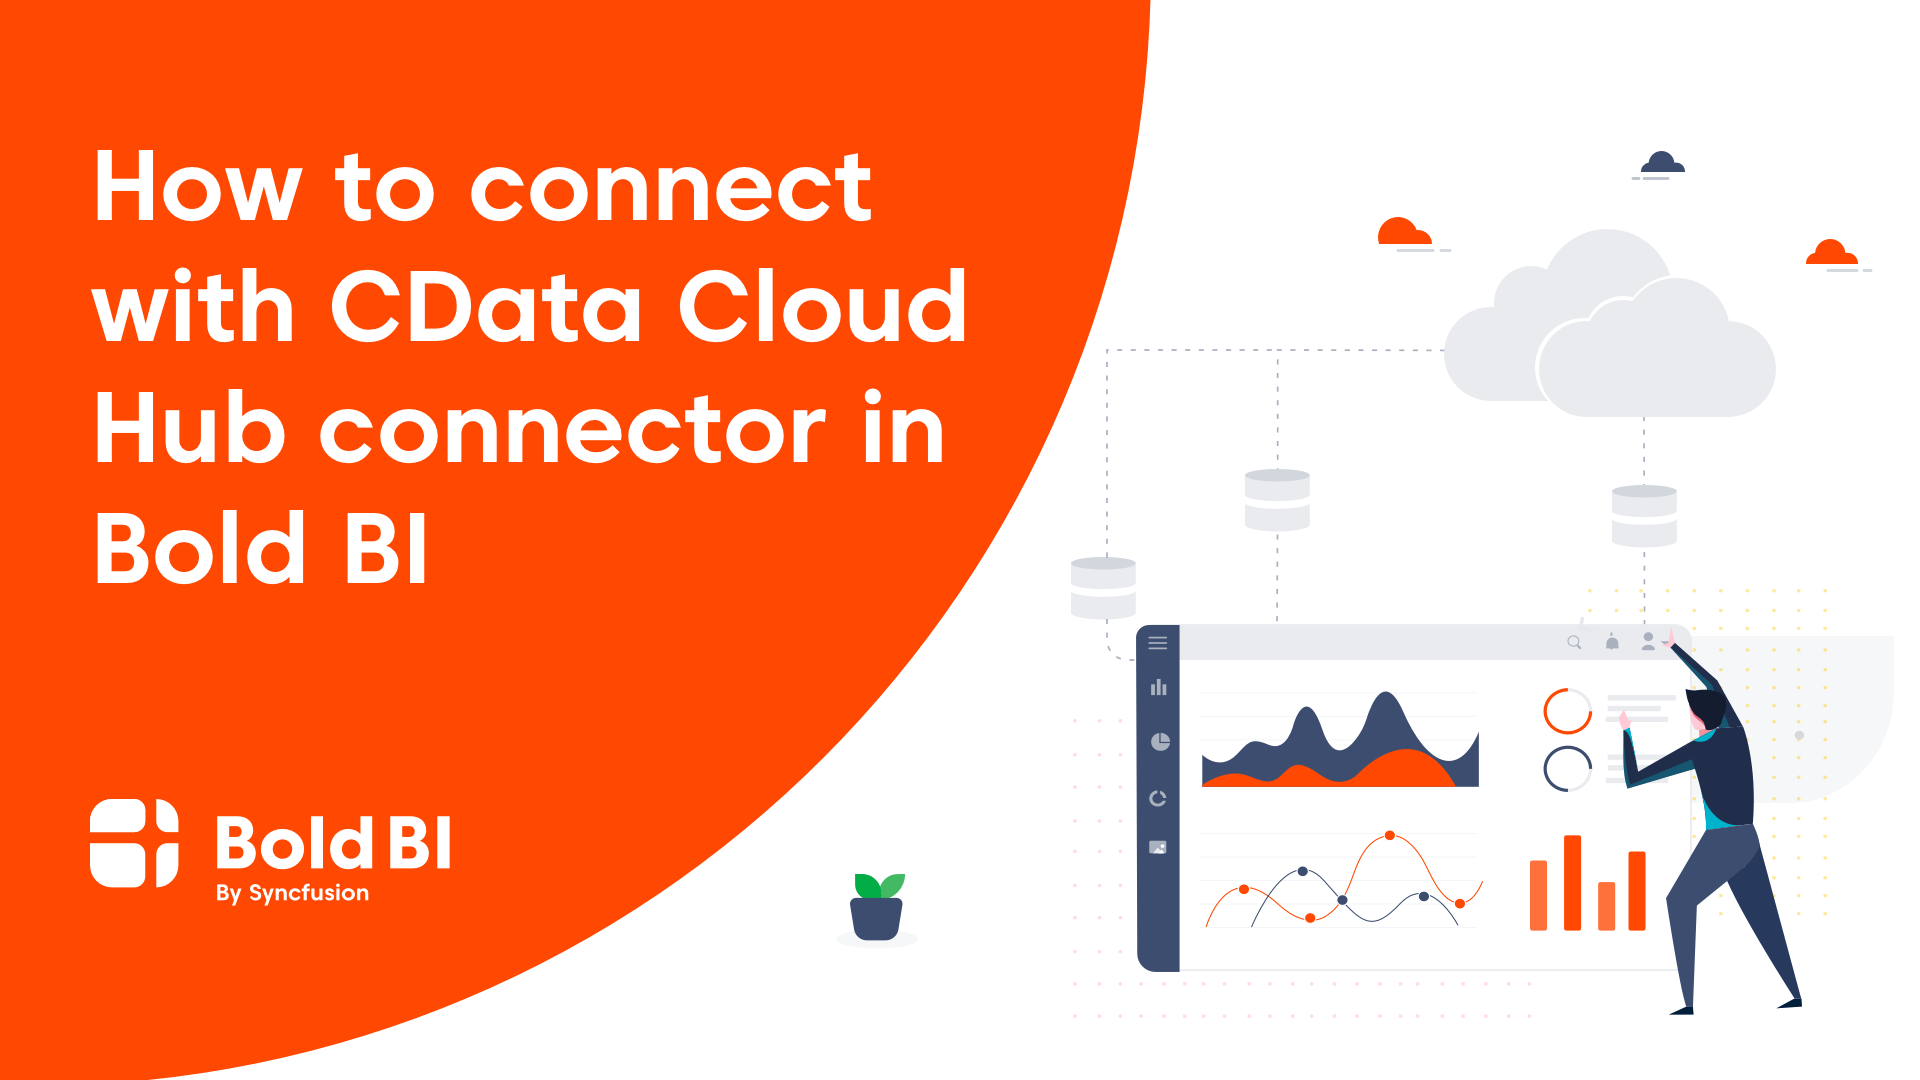 How to Connect with CData Cloud Hub Connector in Enterprise BI